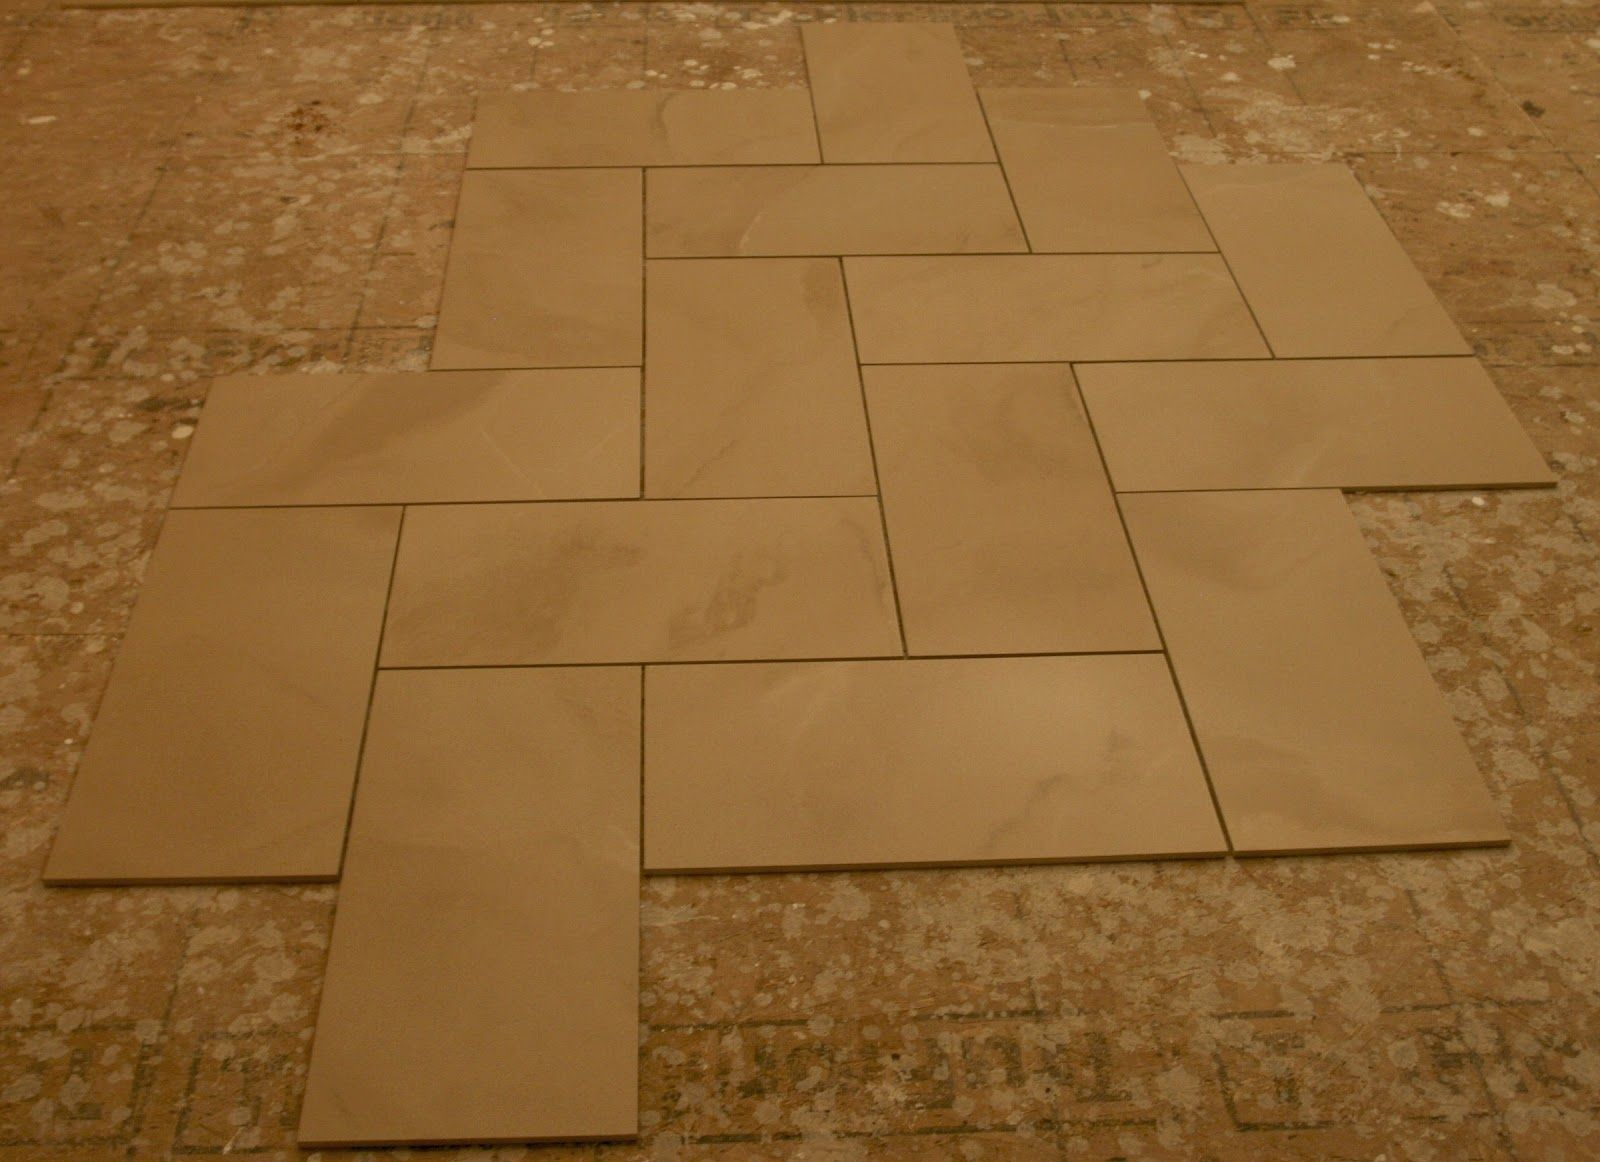 12x24 Tile Pattern Floor Pattern Options Vote For Your Favorite